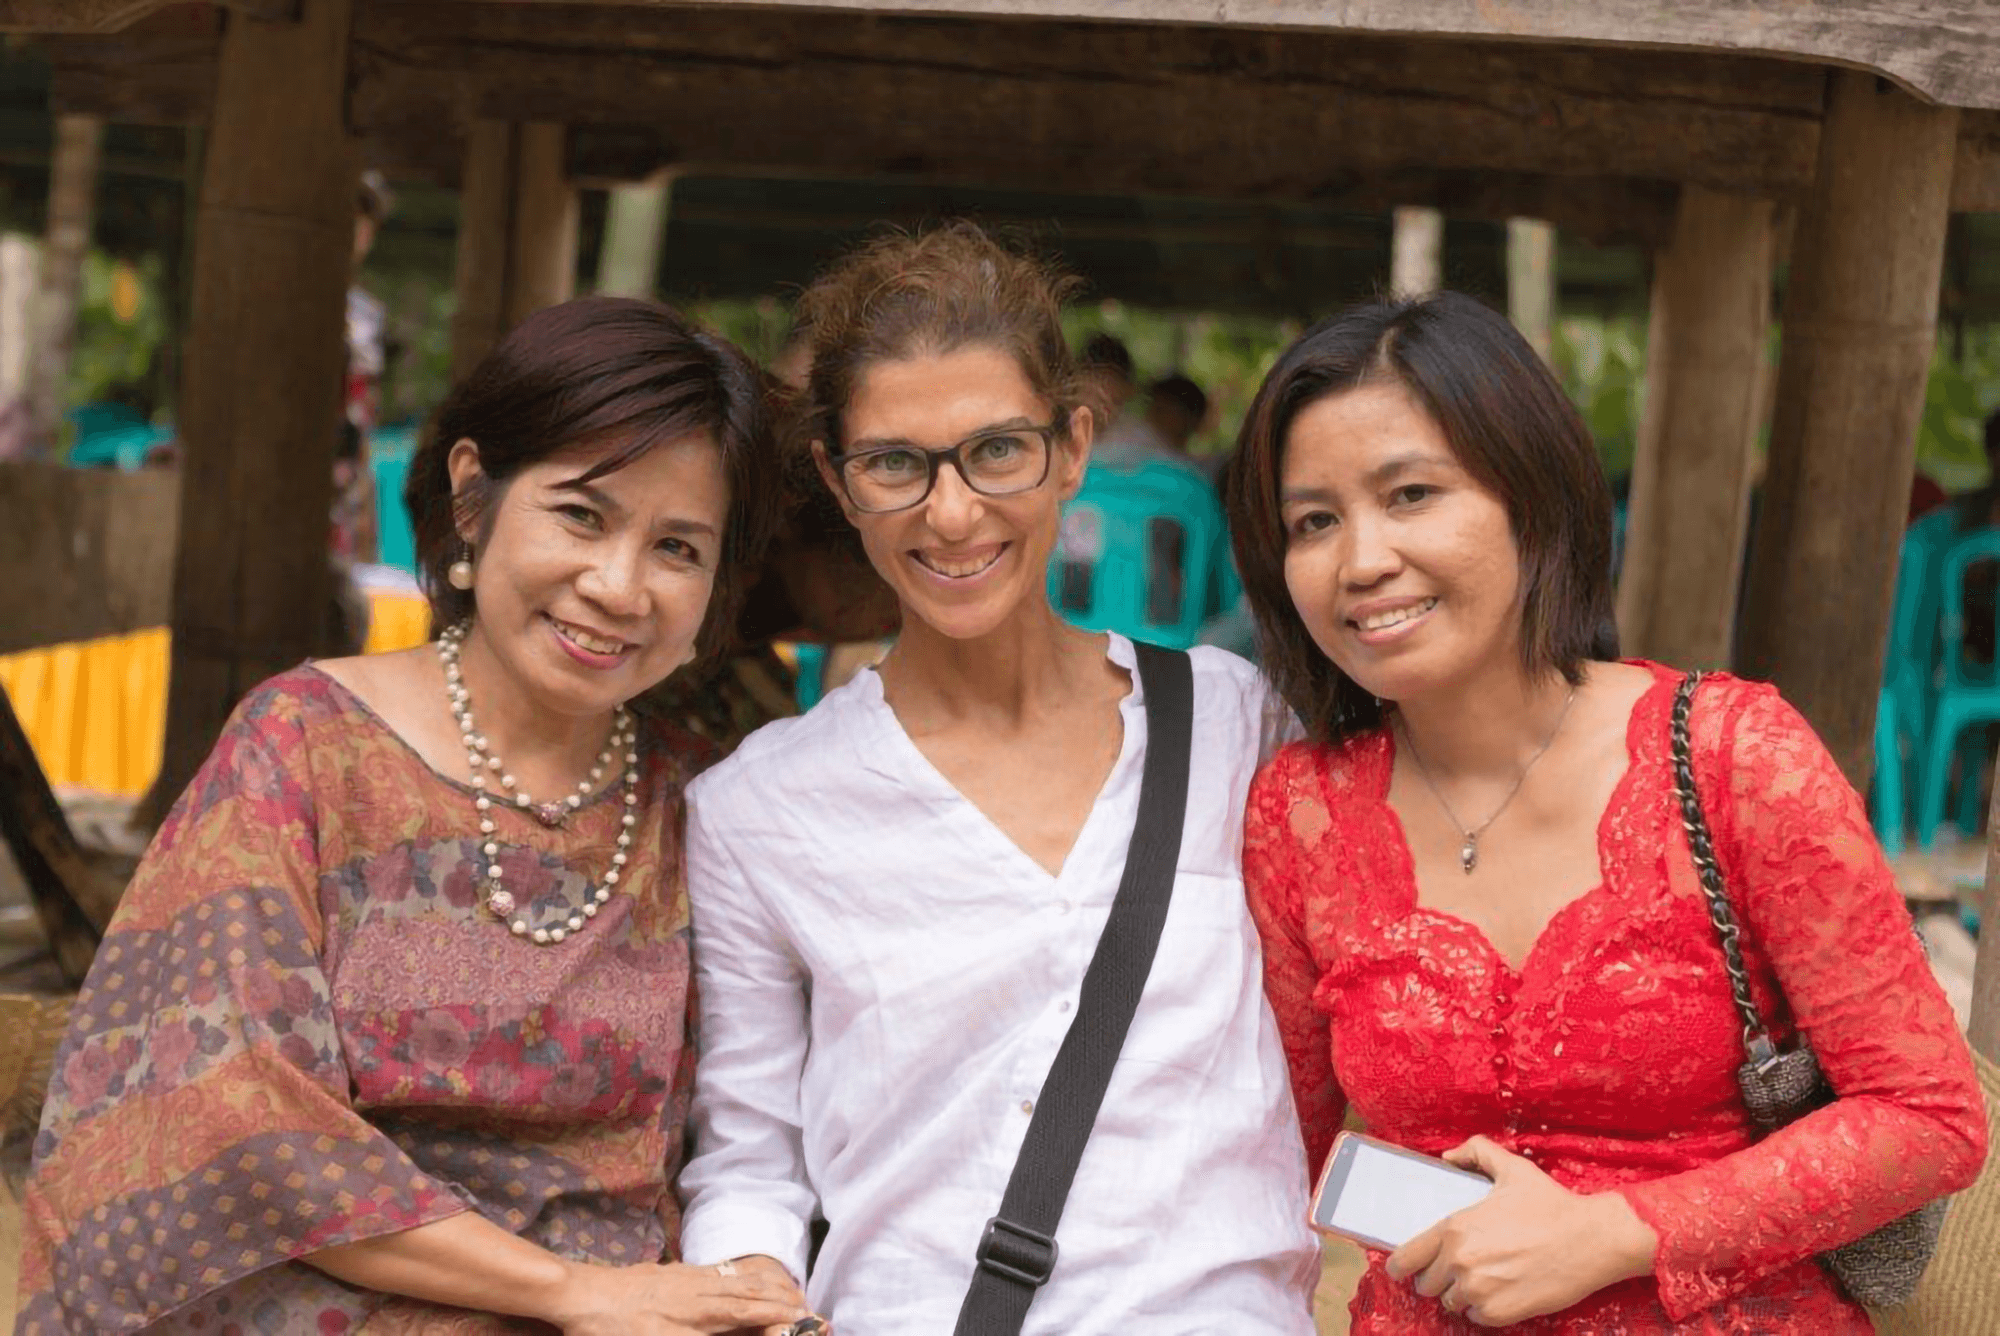 Three multiracial middle-aged women standing together and smiling.